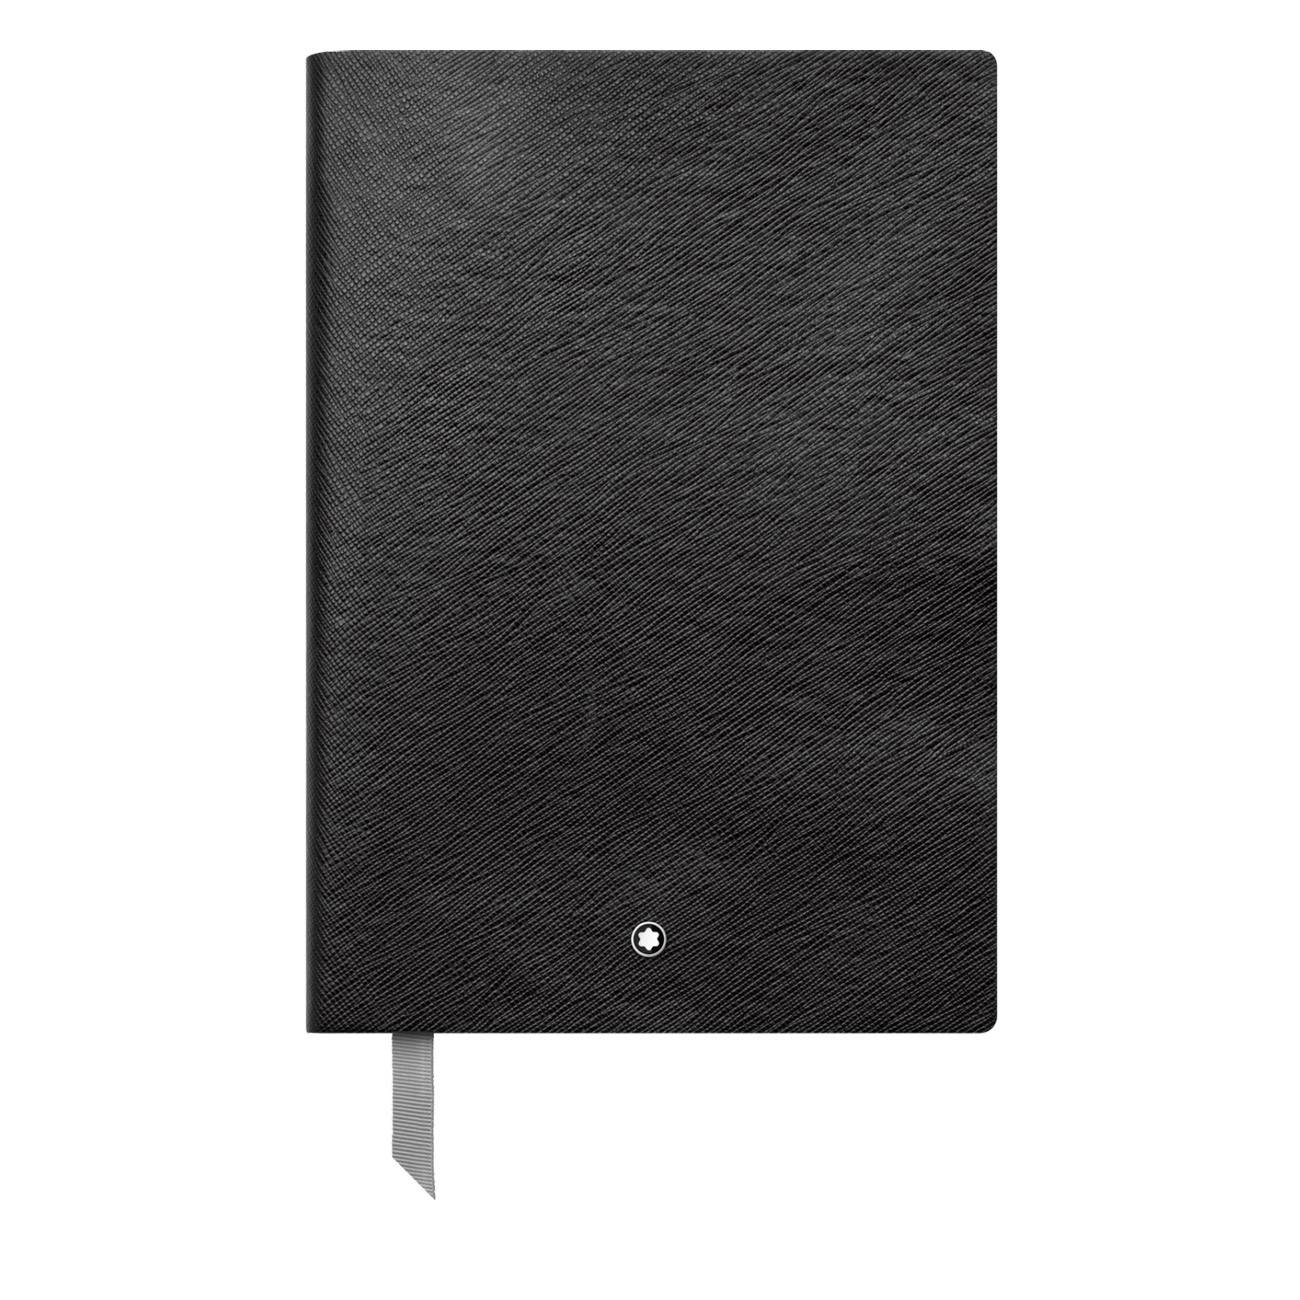 NOTEBOOK BLACK LINED - 96 SHEETS